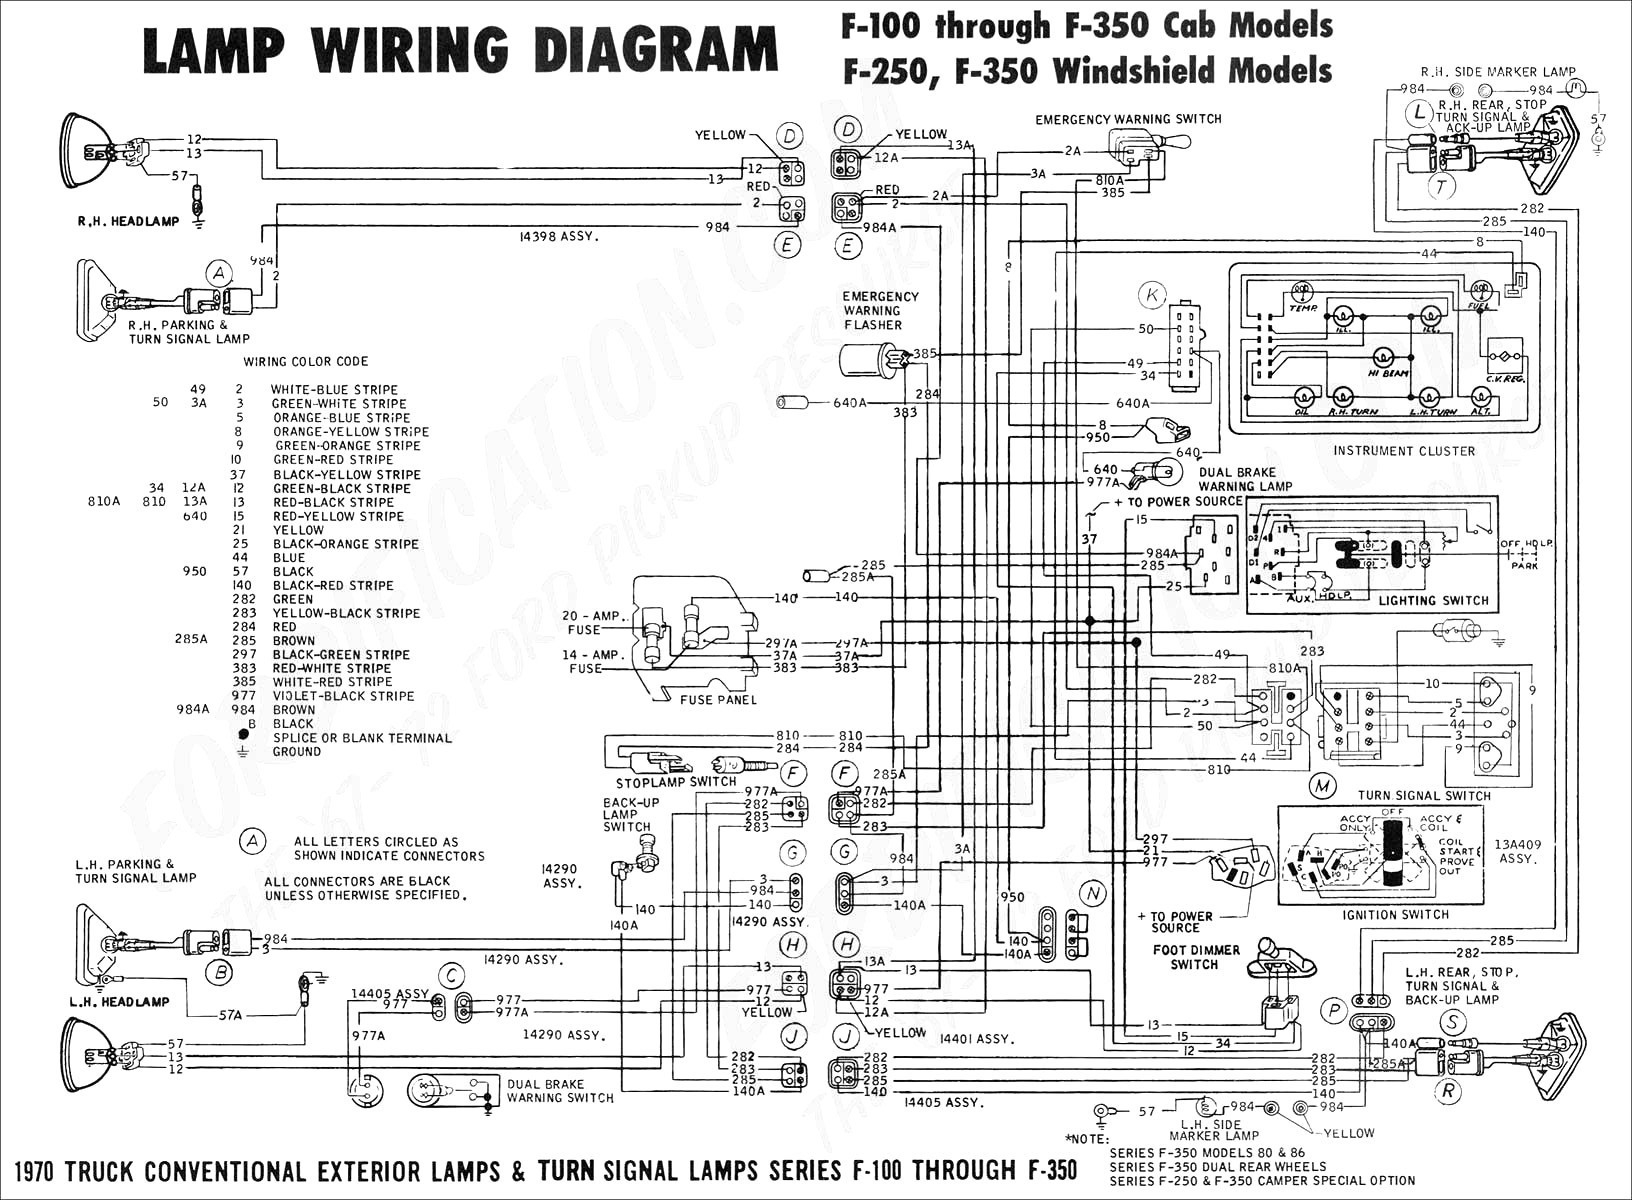 Hawke Dump Trailer Wiring Diagram Awesome Hawke Dump Trailer Wiring - Quality Steel Dump Trailer Wiring Diagram